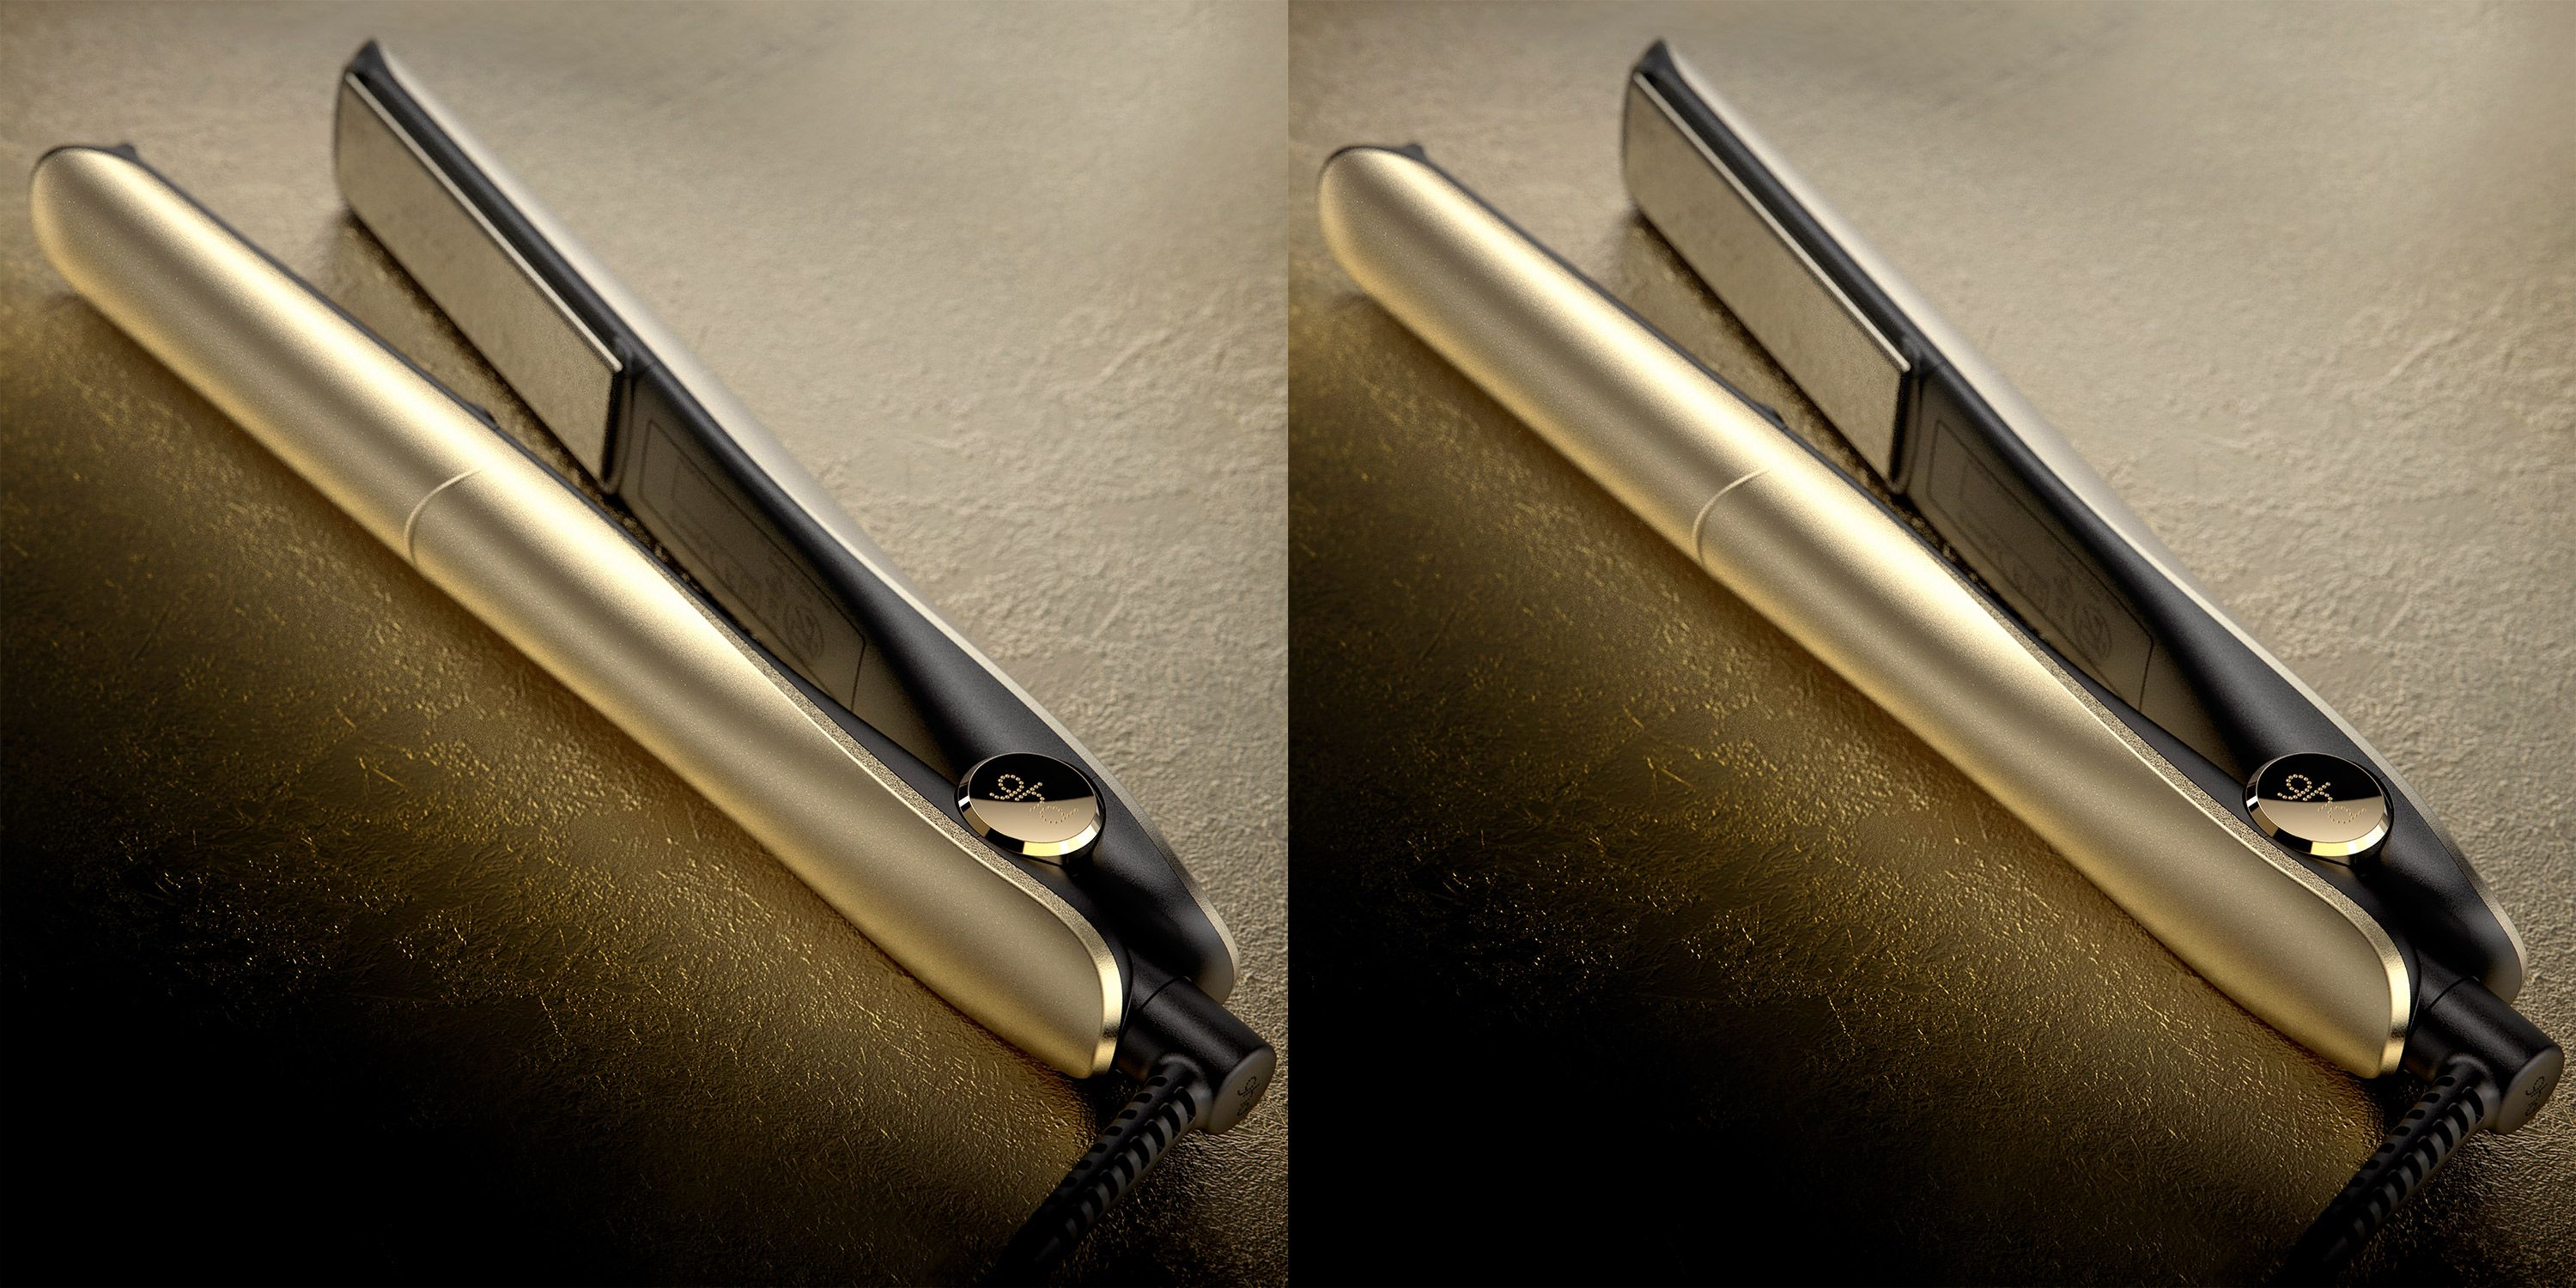 Ghd has launched the worlds first ever smart hair straightener images